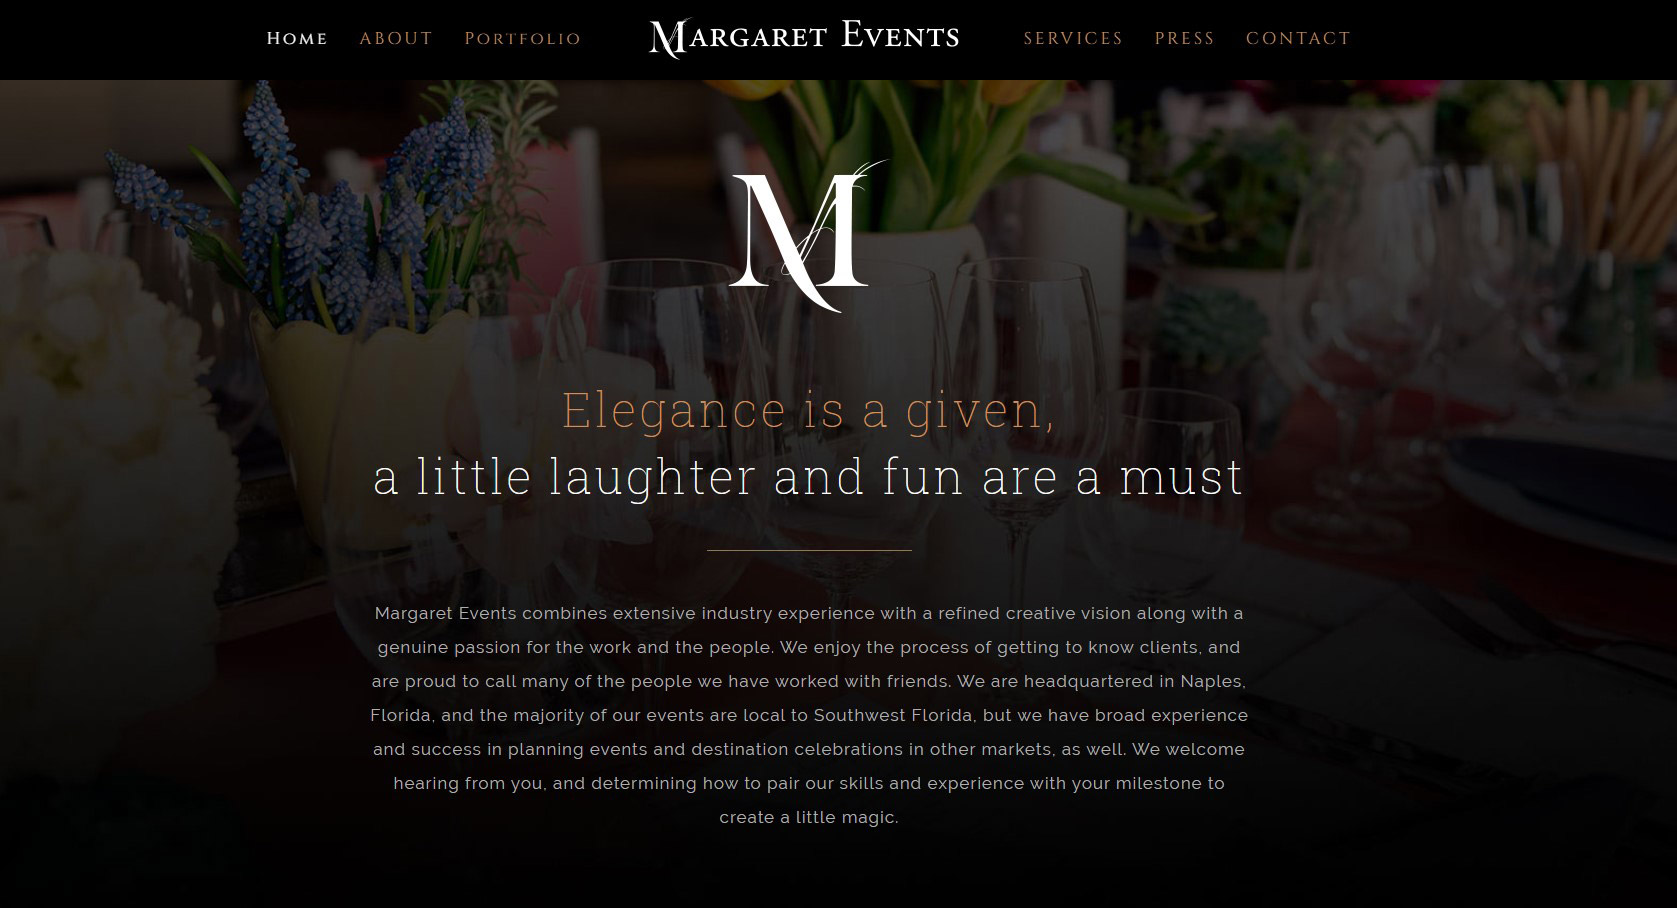 Margaret Events